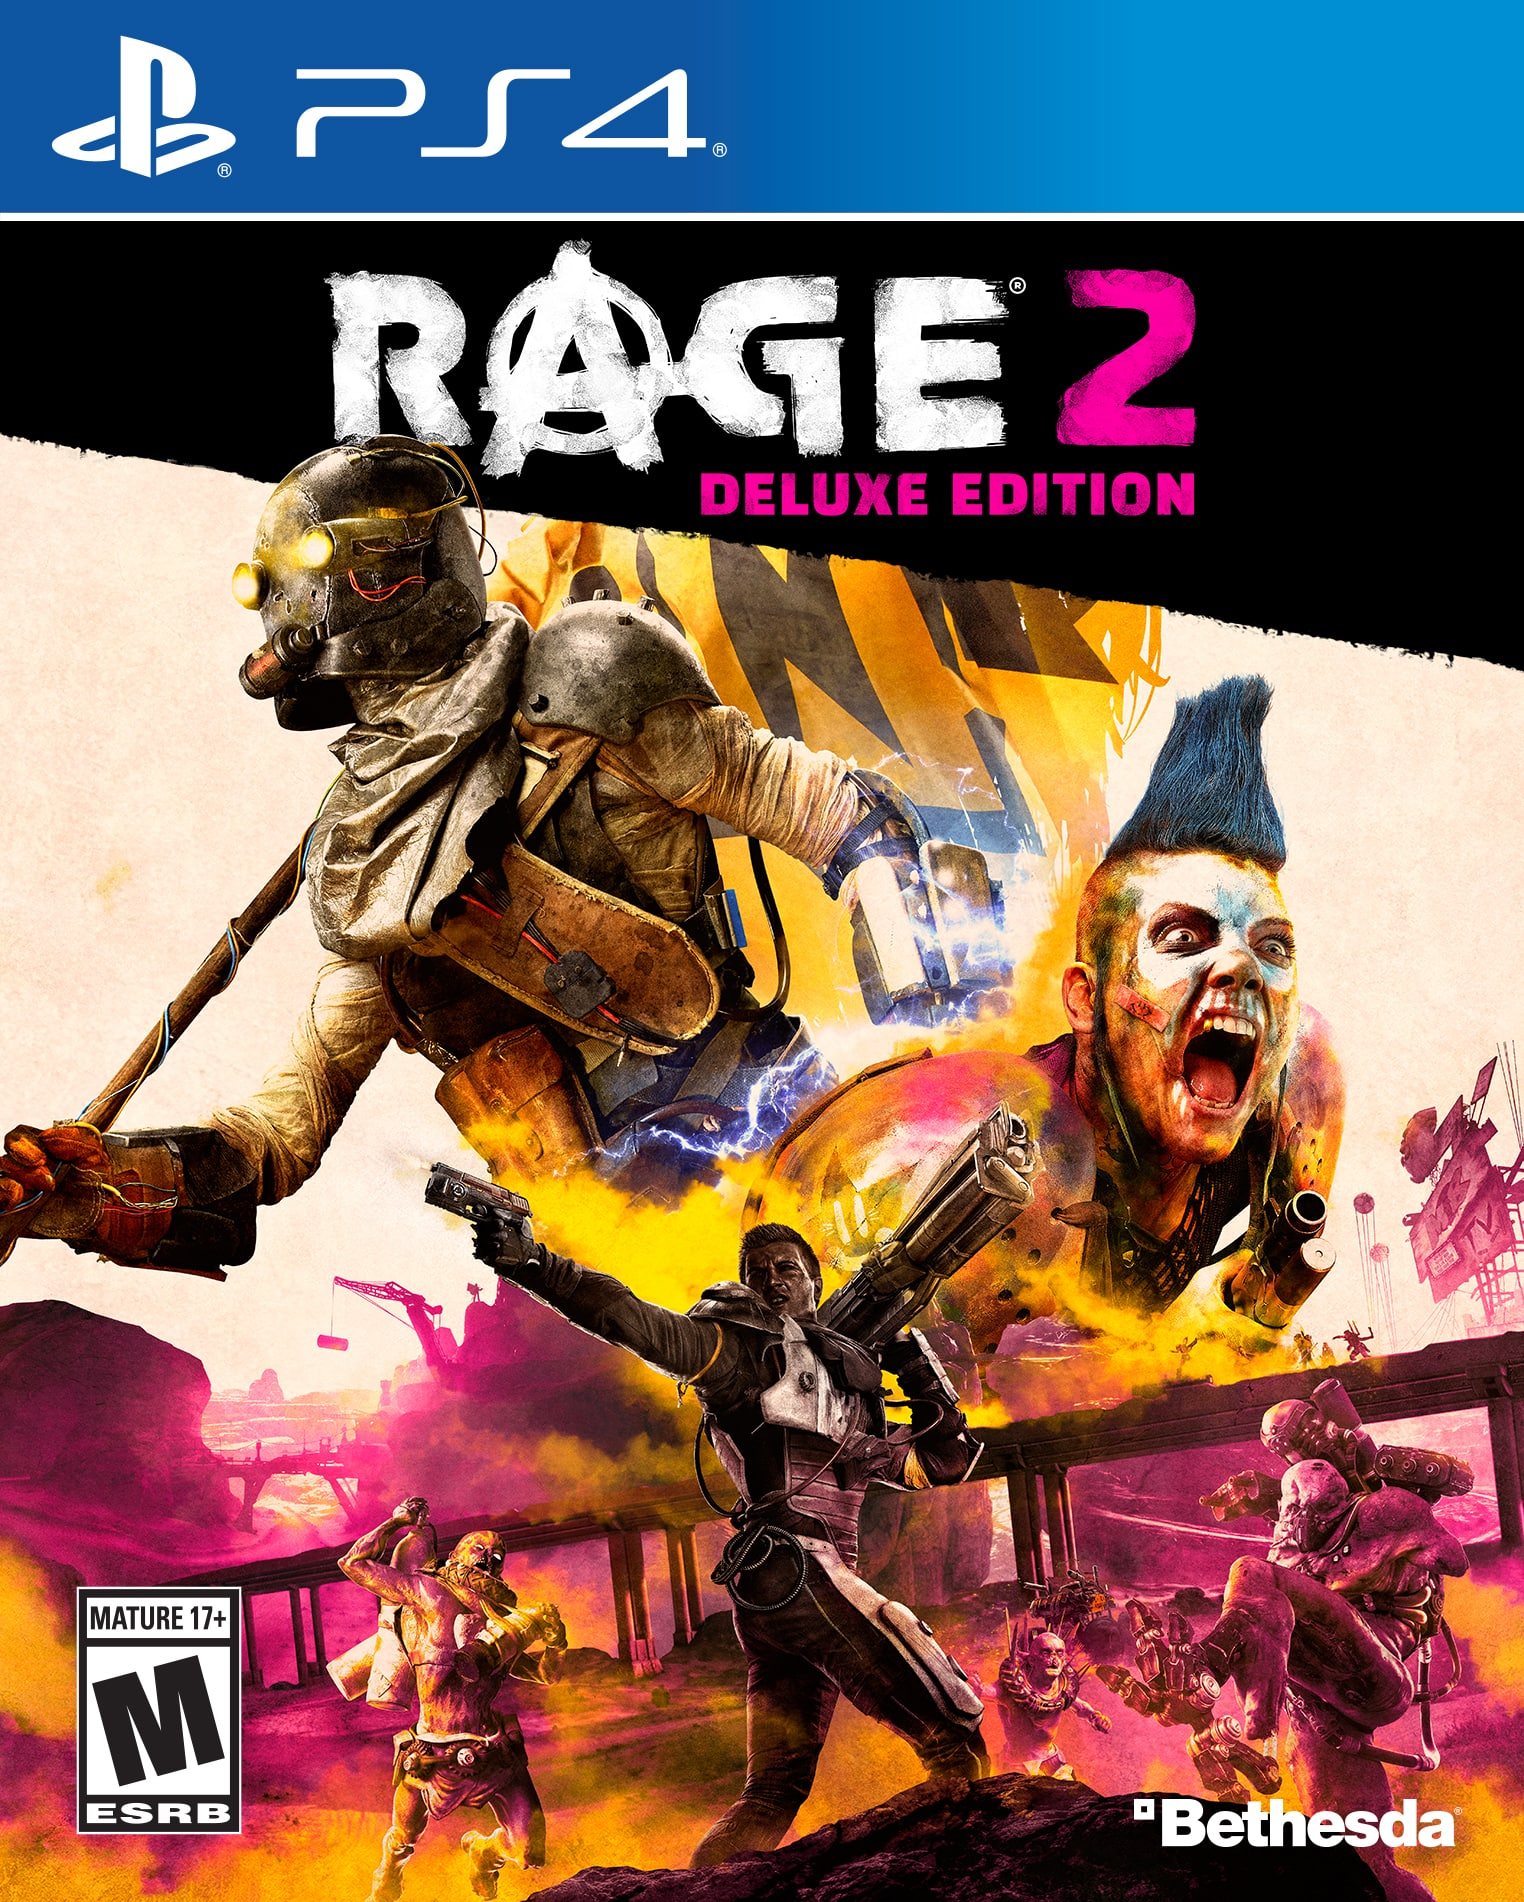 Rage 2 Deluxe Edition for Playstation 4 & Xbox One - $29 IN STORE at Walmart stores - YMMV on stock - Xbox One version cheaper ($24.99 plus tax) from VIP Outlet on Walmart.com